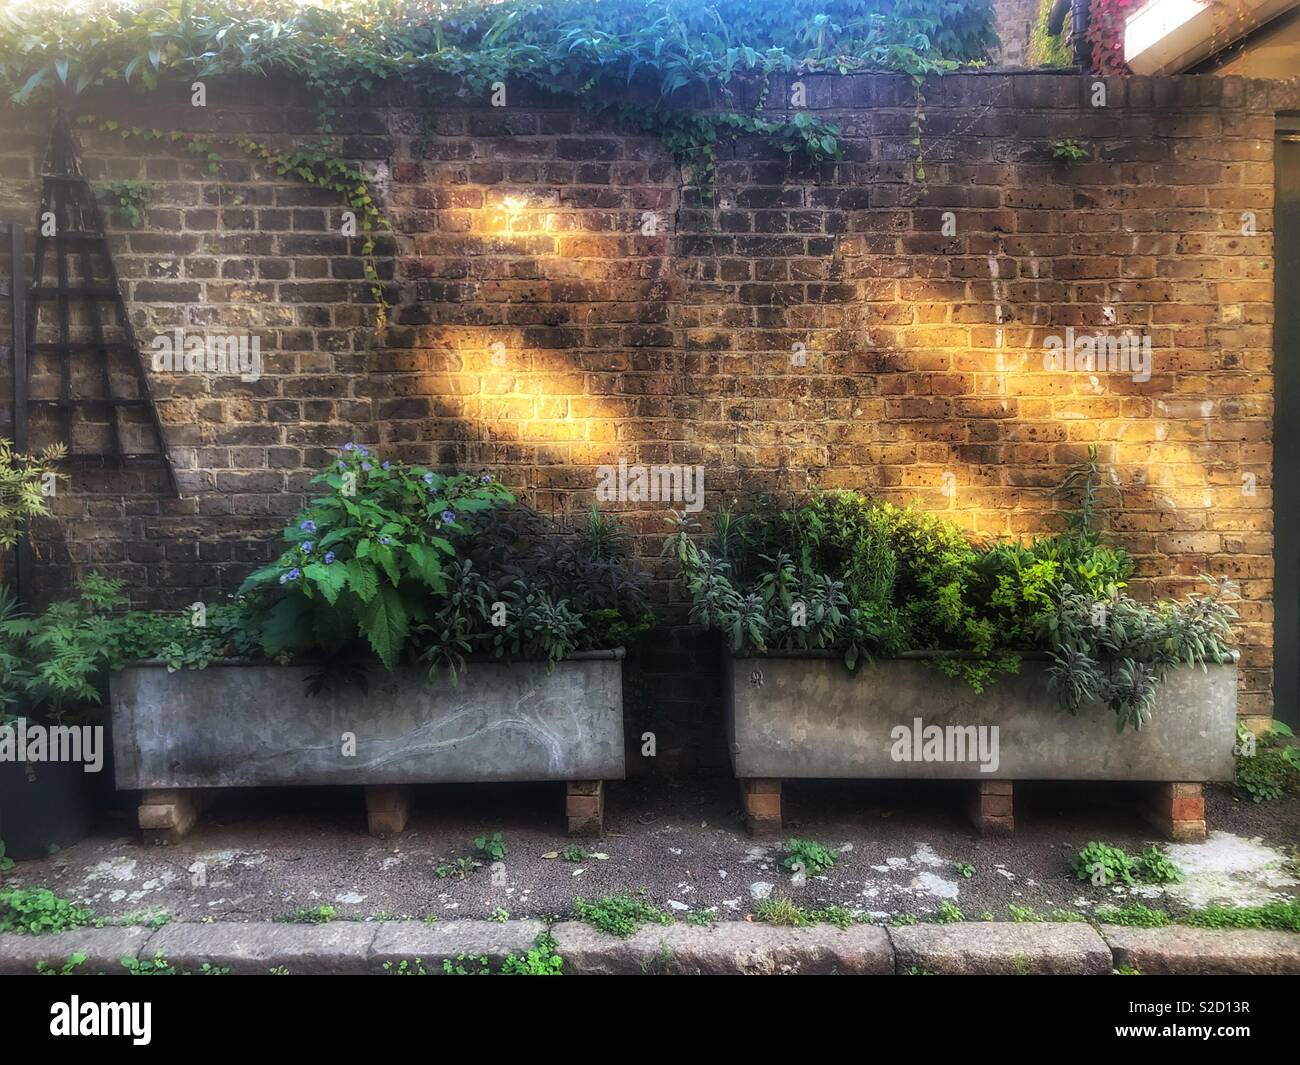 Rustic metal herb raised planters in a trough style against a brick wall with slanted of sunlight - Stock Image